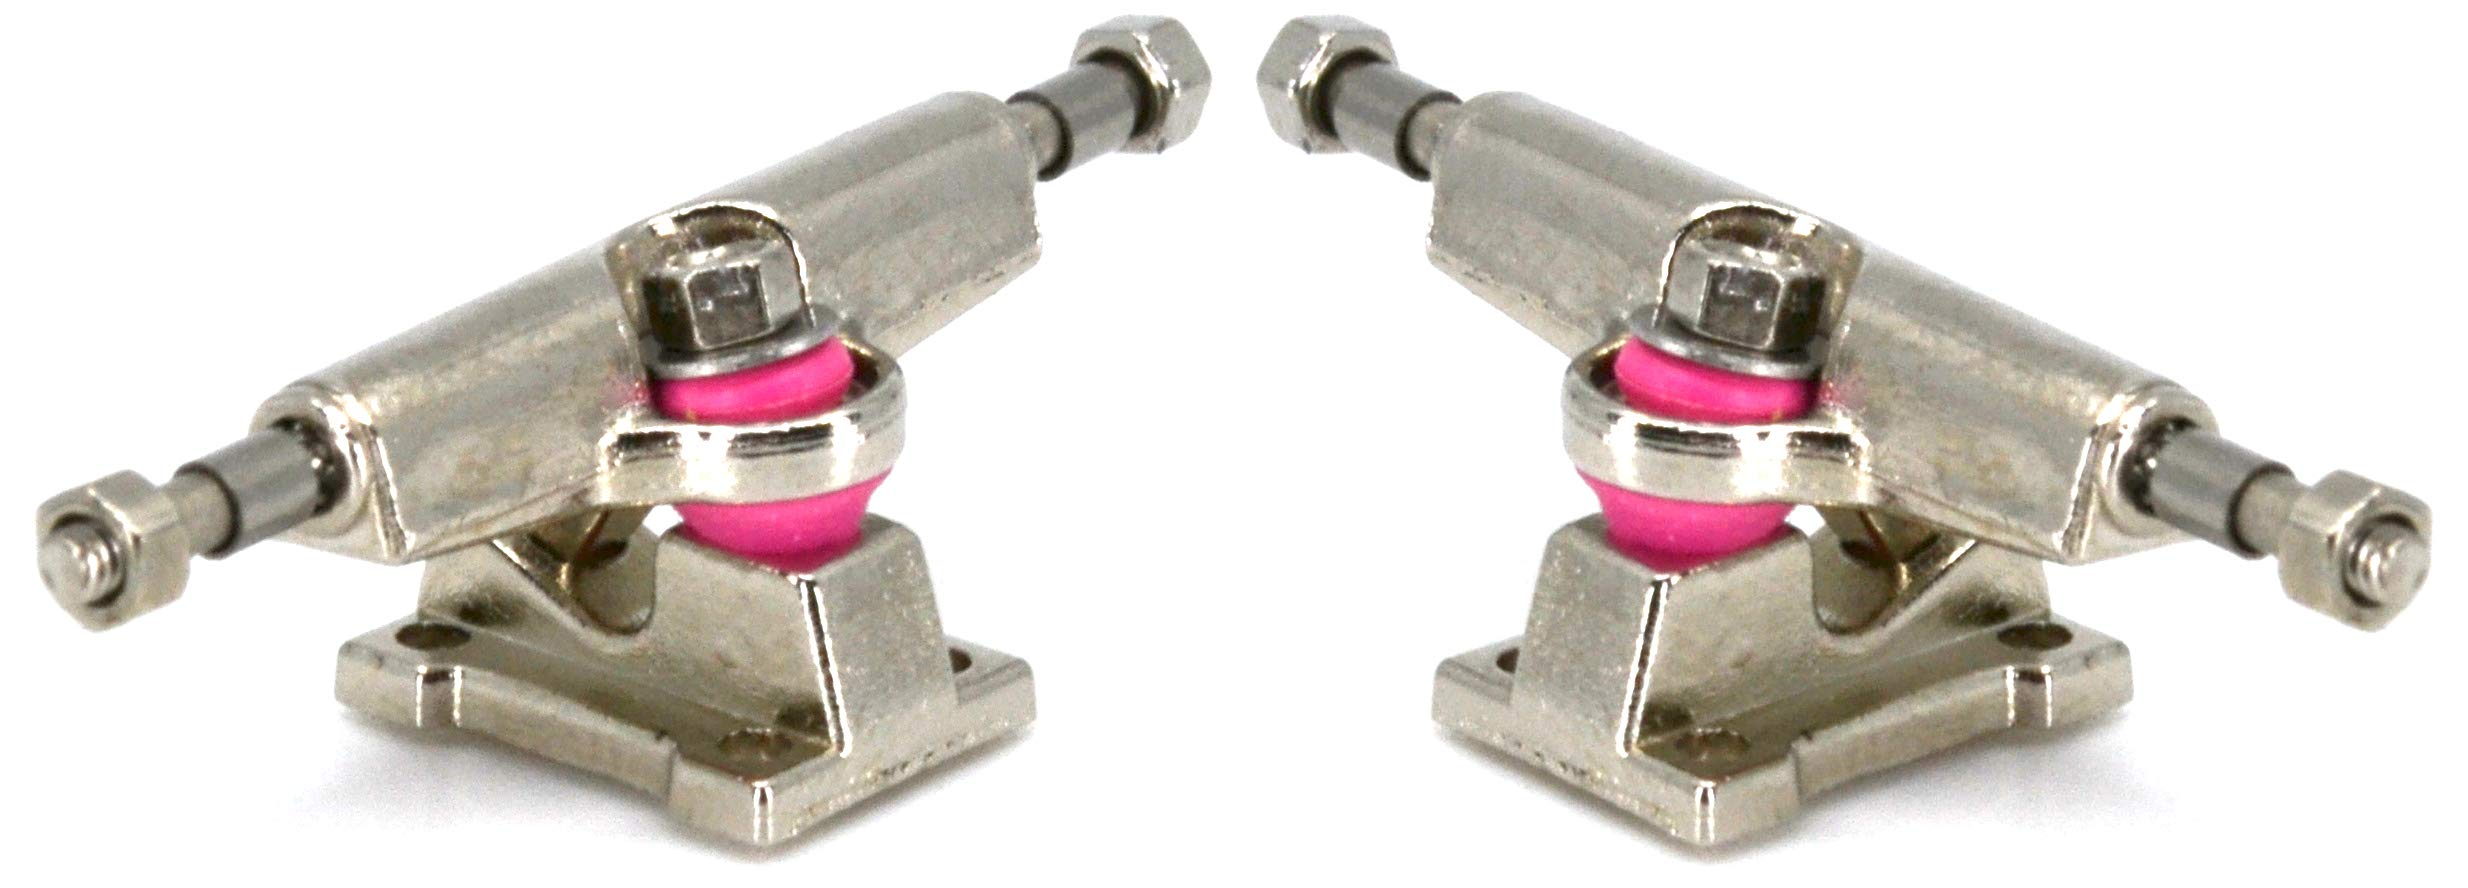 Teak Tuning Professional Fingerboard Trucks Pink Collaboration Tuning, 32mm, Chrome Silver (Set of 2)